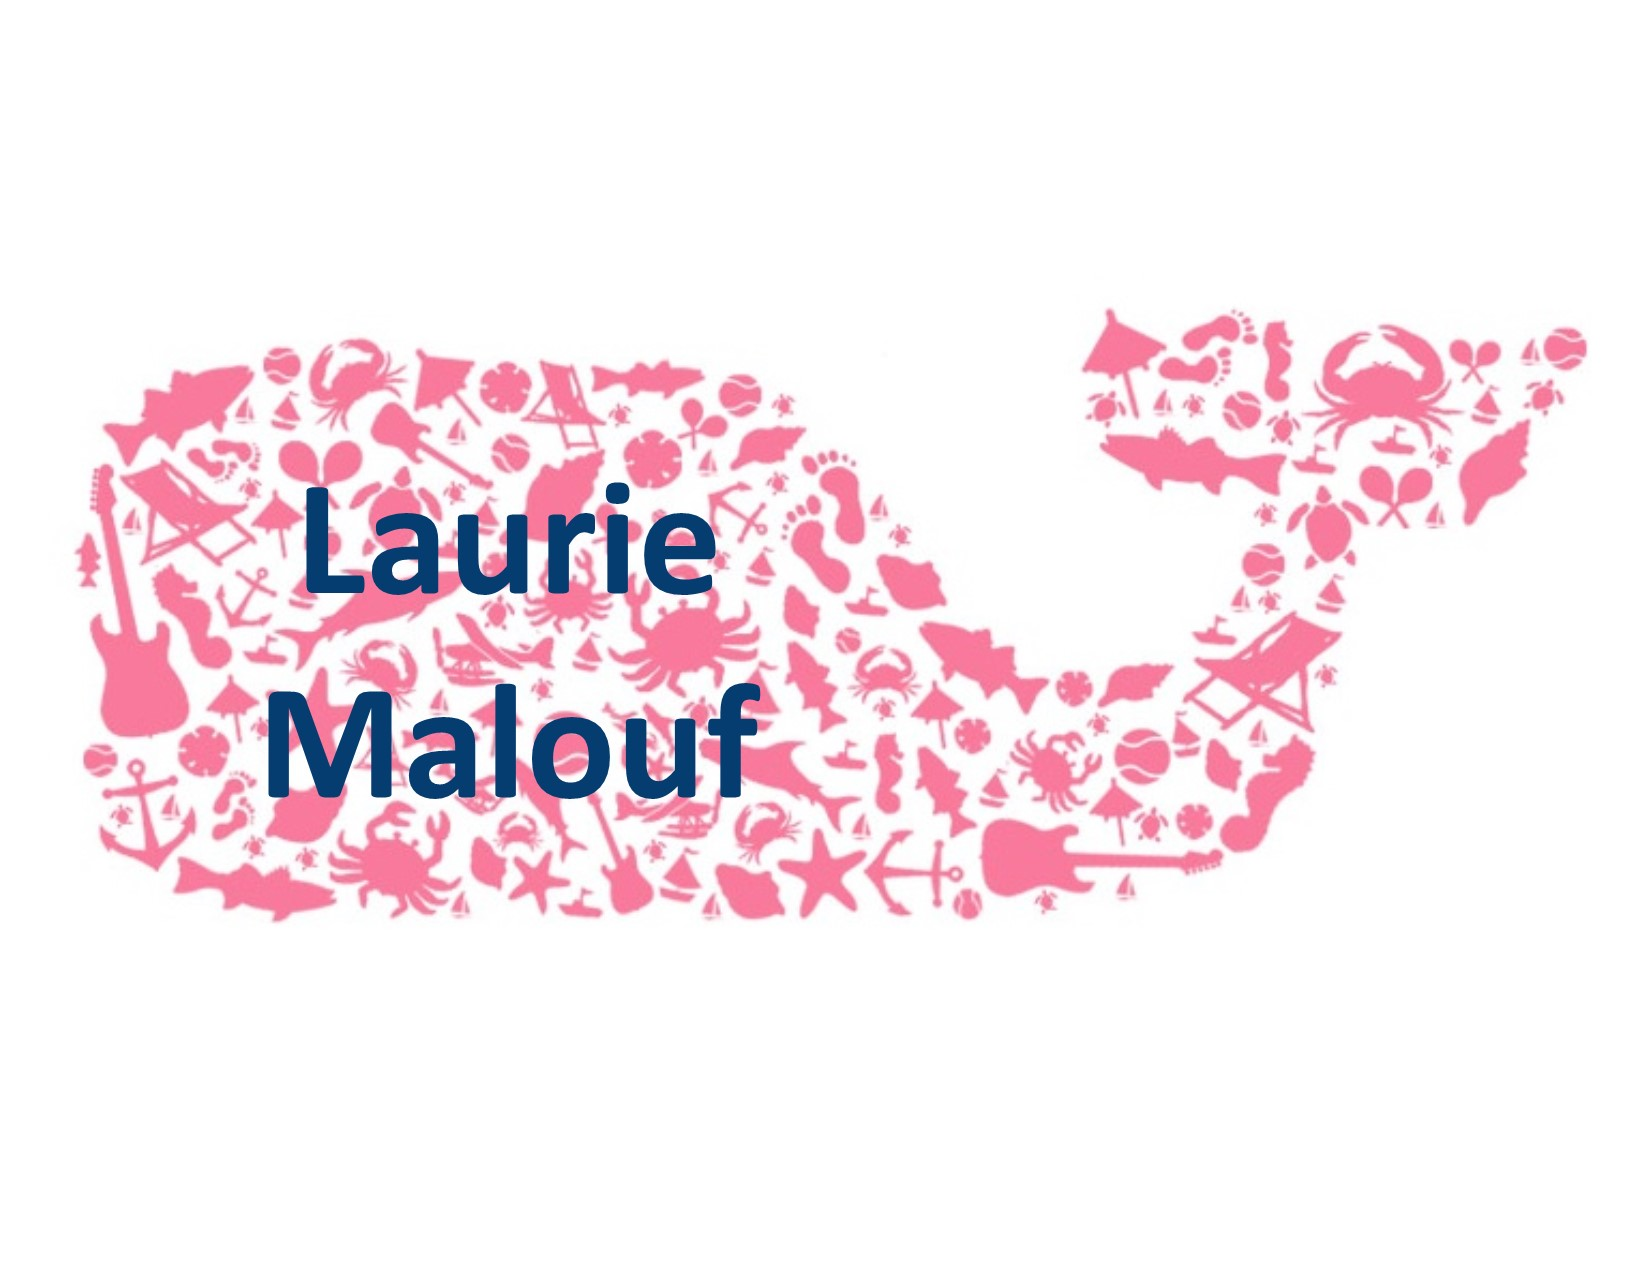 Malouf, Laurie.jpg